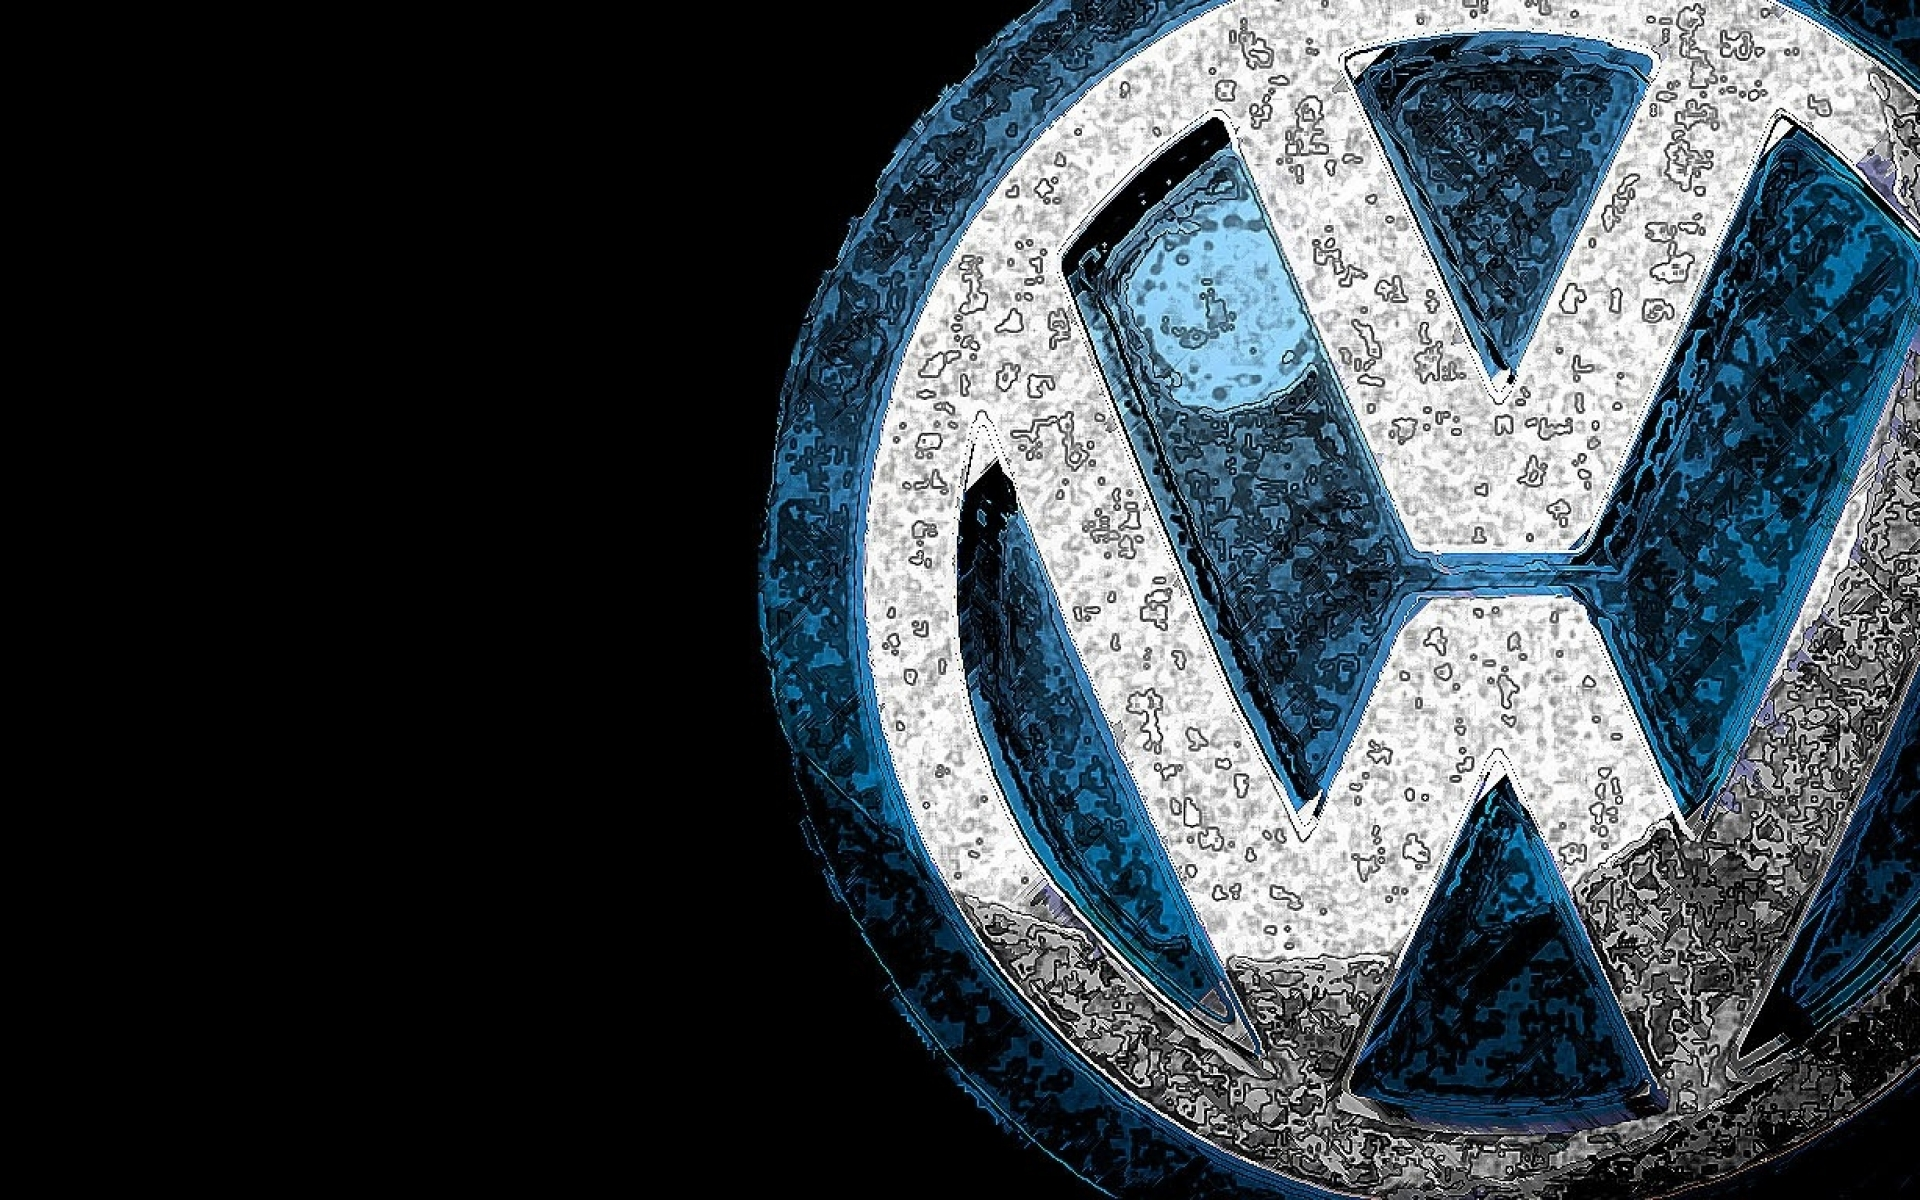 Vw desktop wallpaper wallpapersafari for Wallpaper wallpaper wallpaper